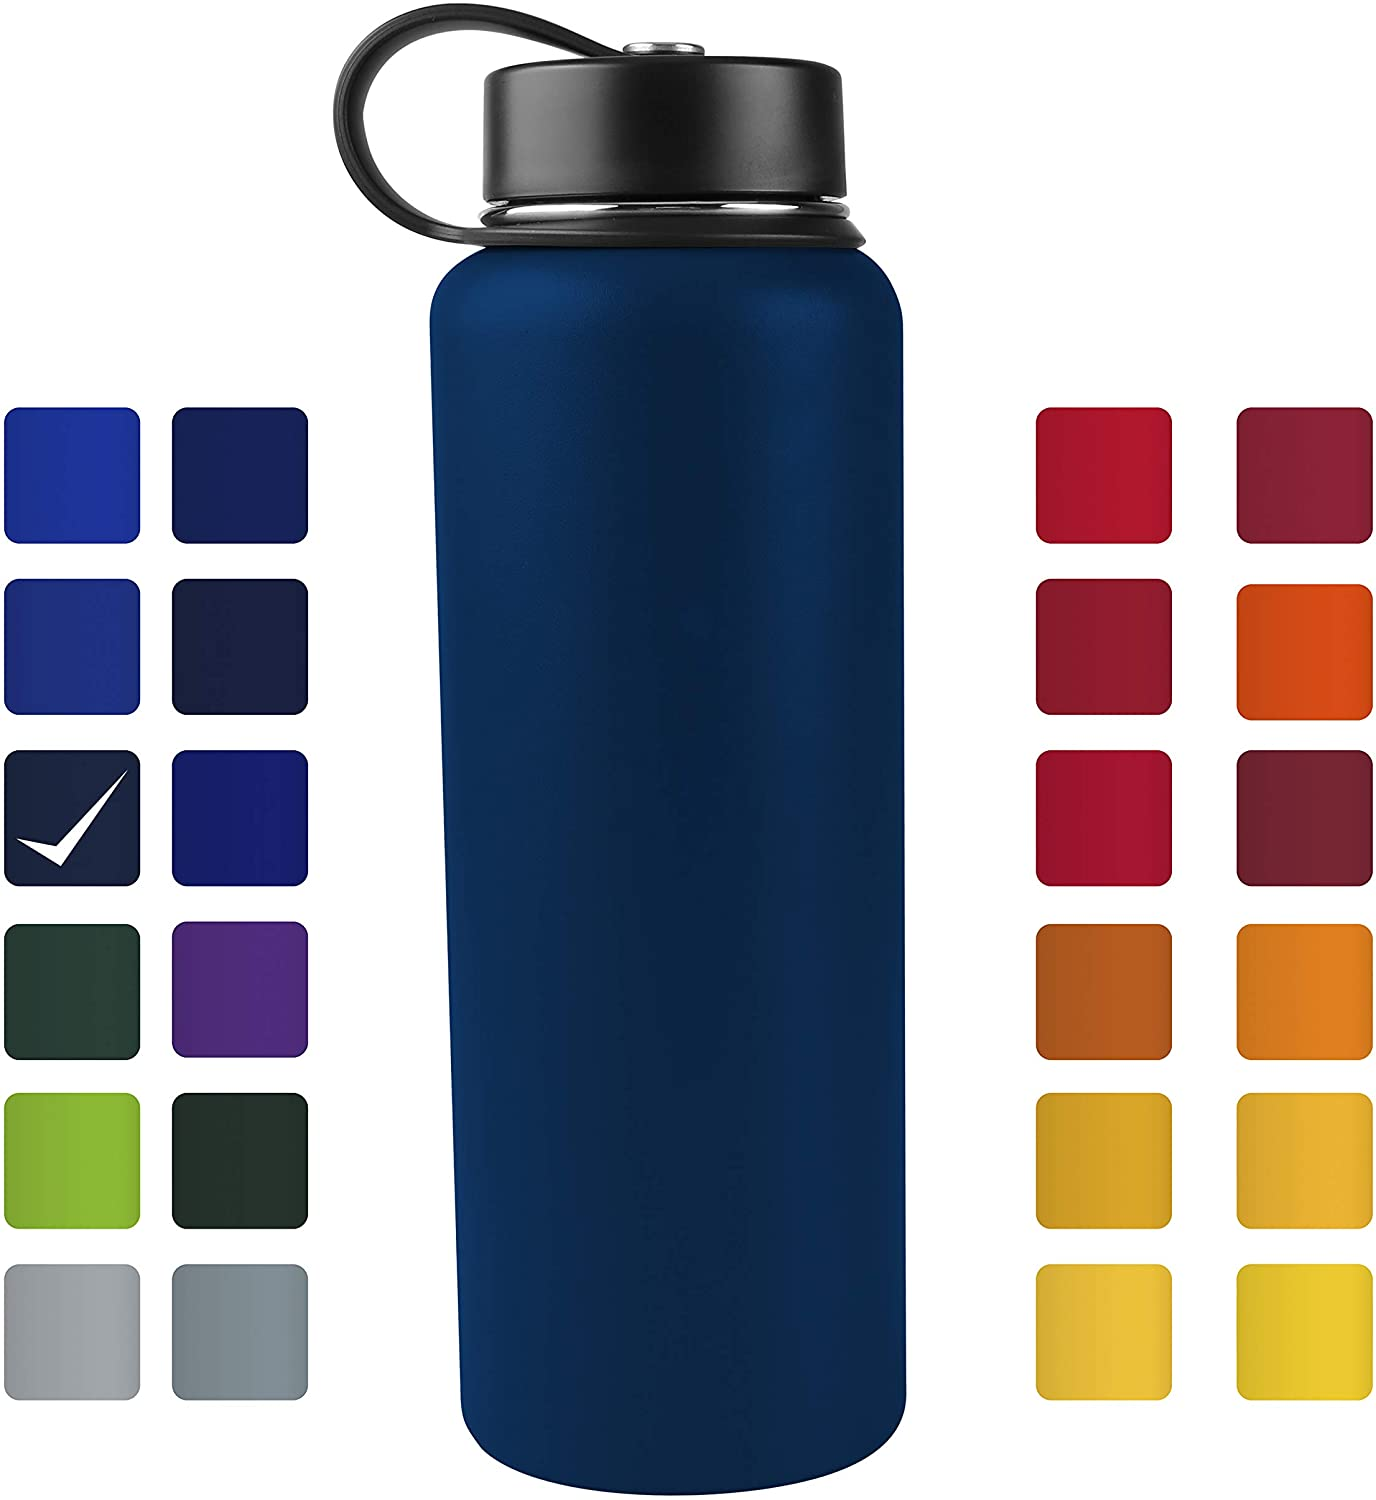 Tahoe Trails 40 oz Double Wall Vacuum Insulated Stainless Steel Water Bottle, Dark Denim